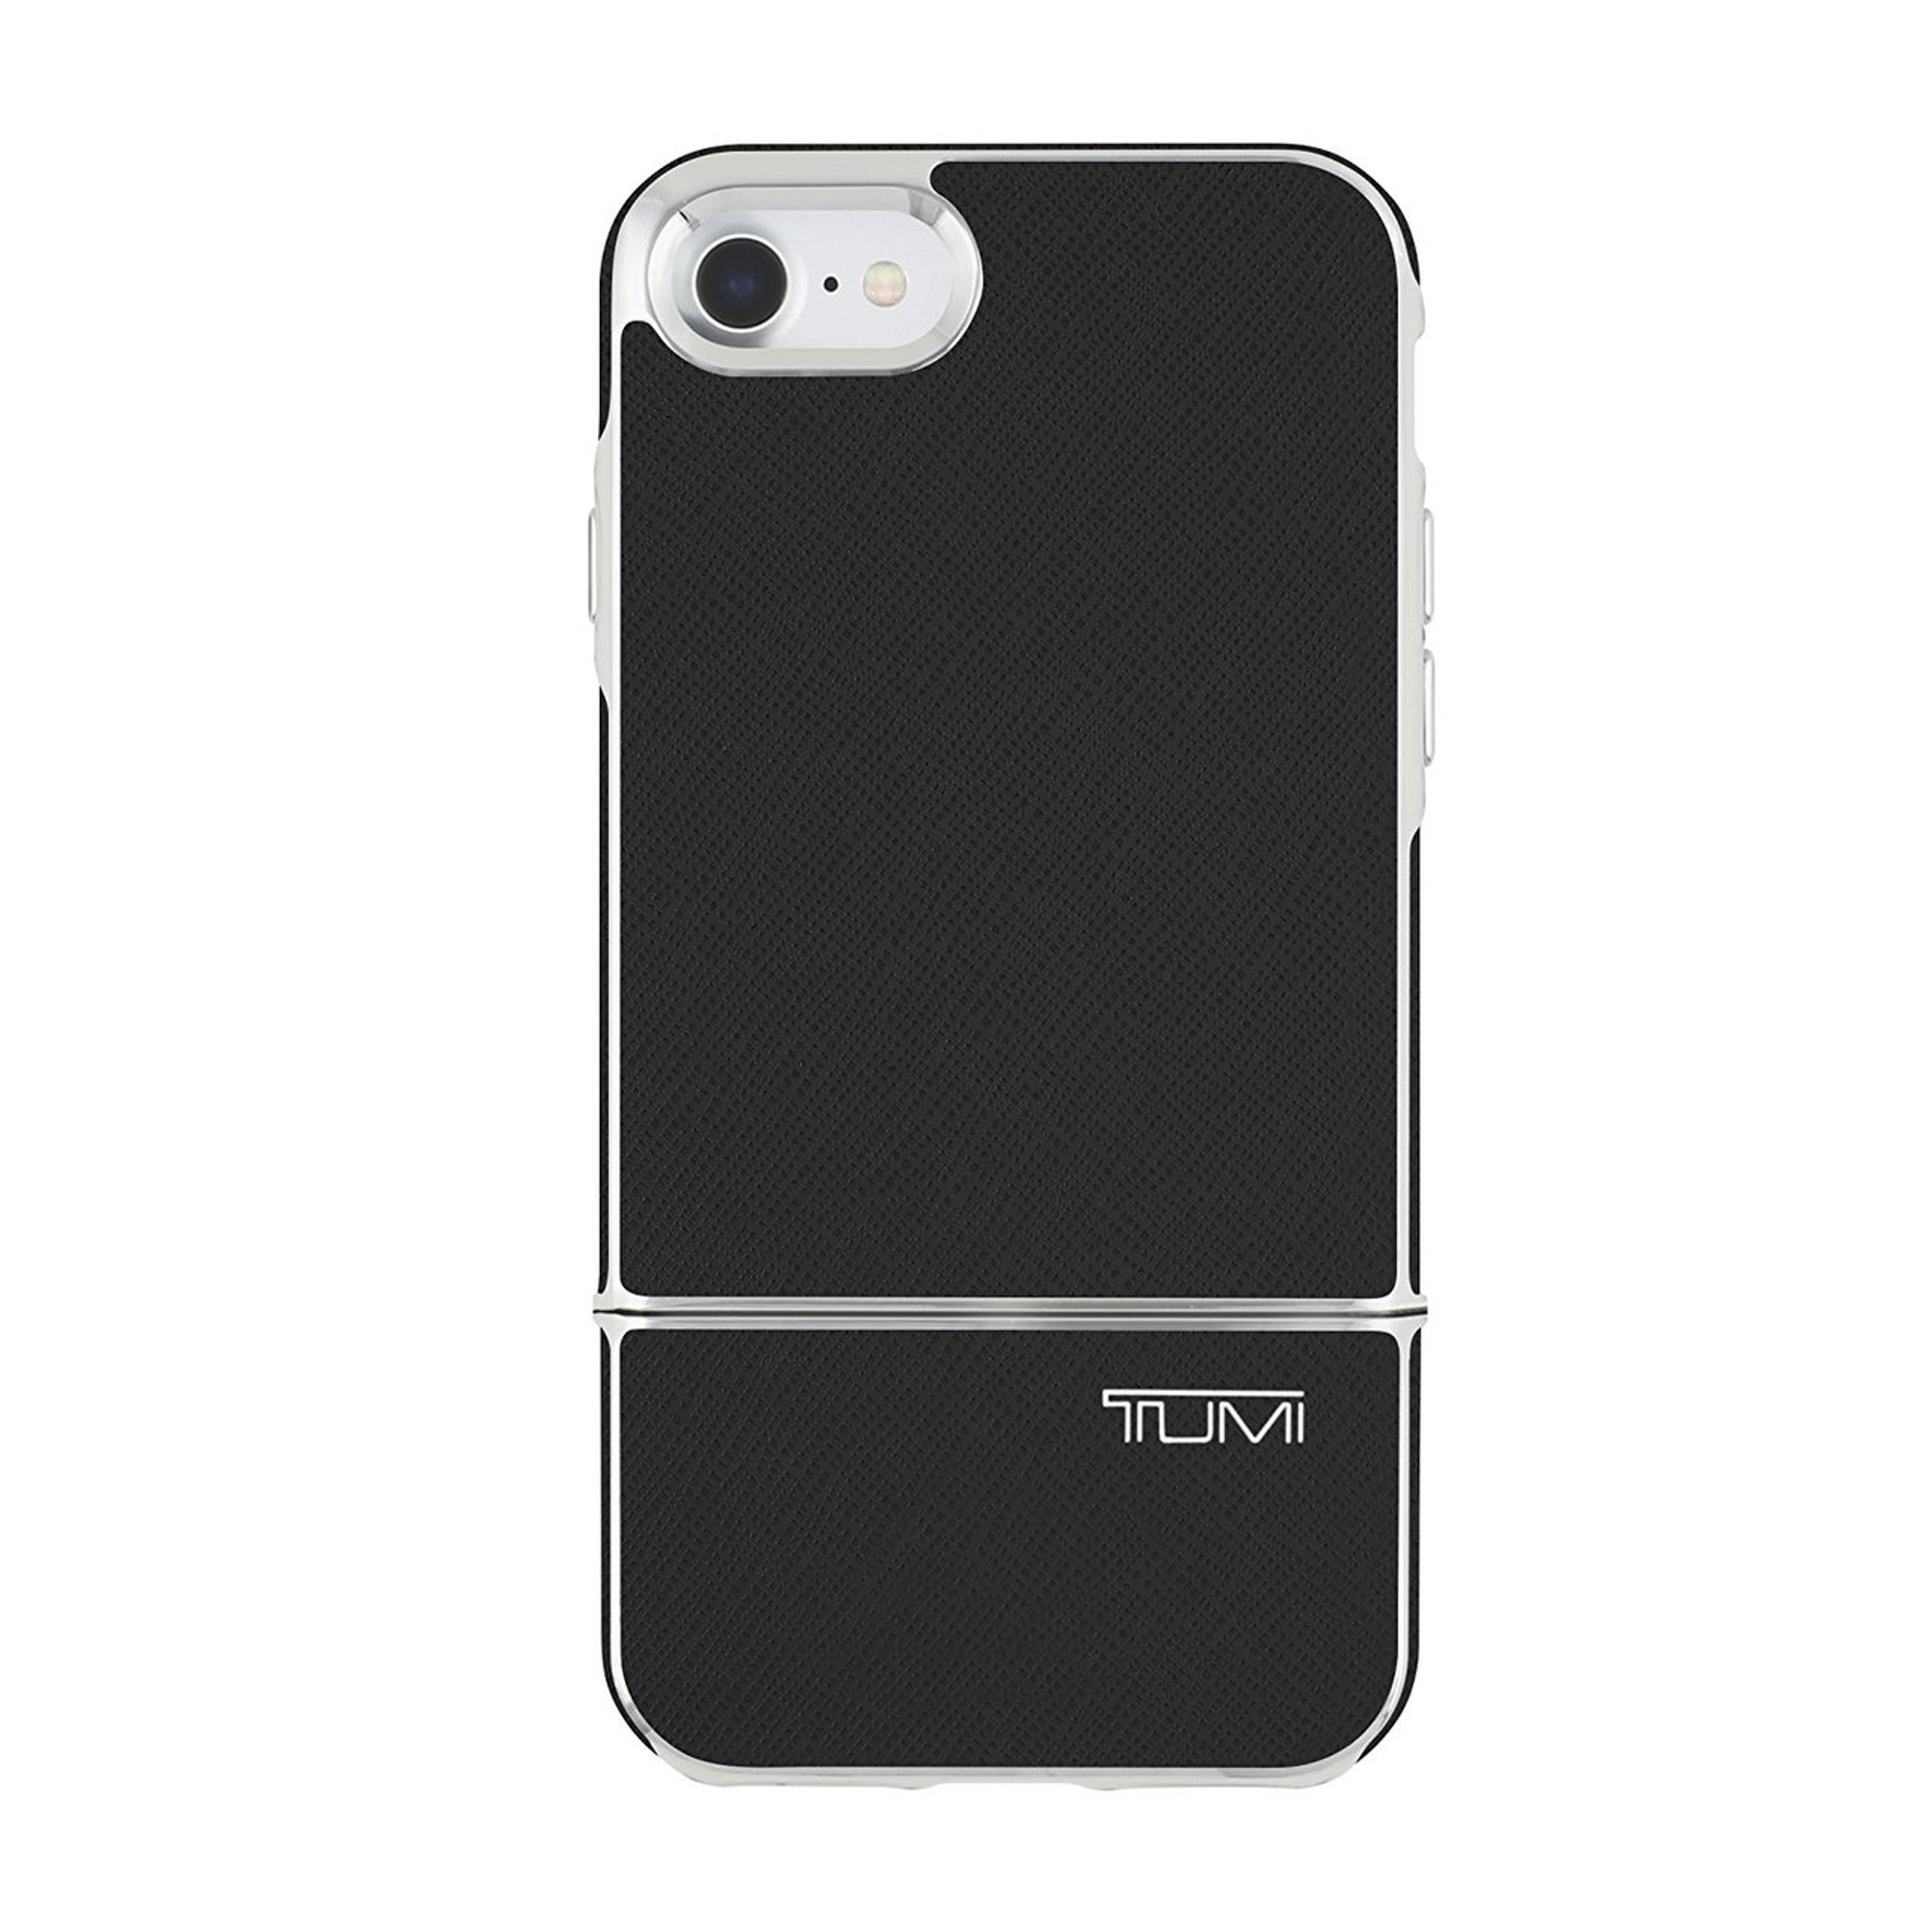 save off 923d7 08162 Tumi 2 Piece Slider Case for iPhone 7 Plus - Black Leather